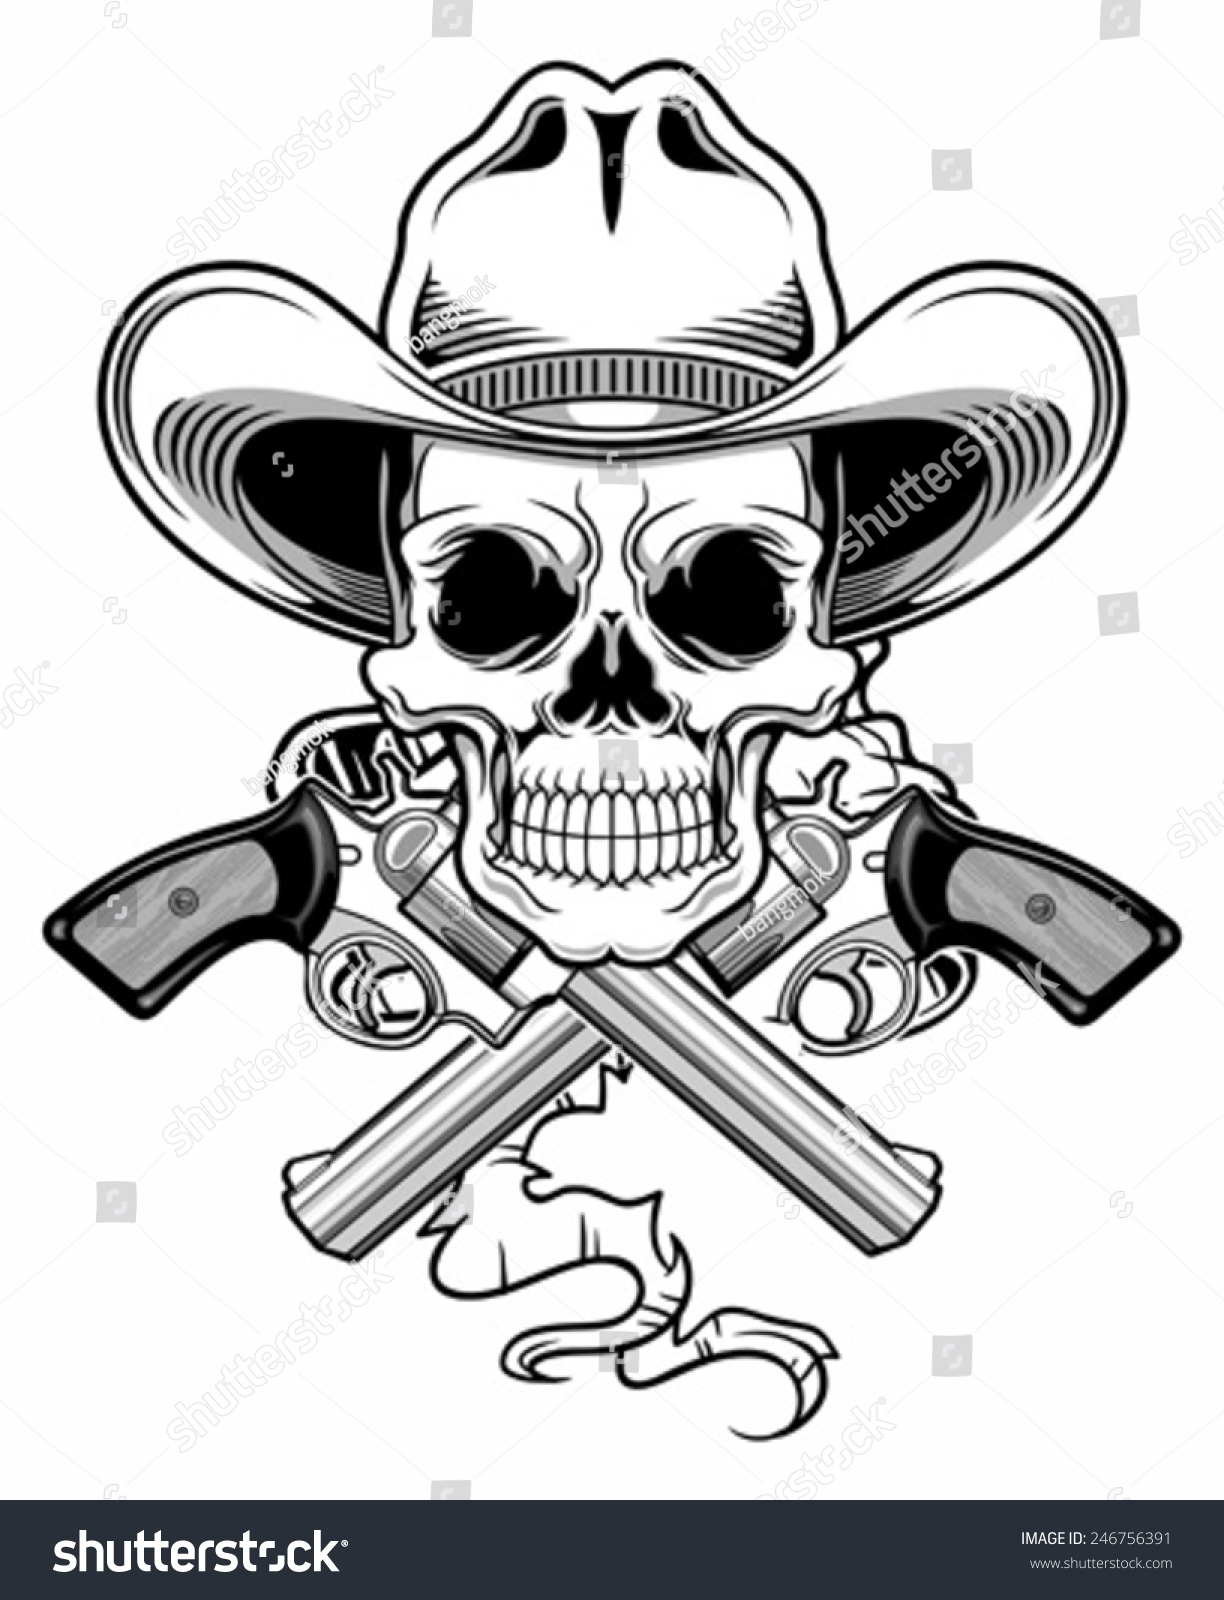 Skull Cowboy Images Stock Photos amp Vectors  Shutterstock